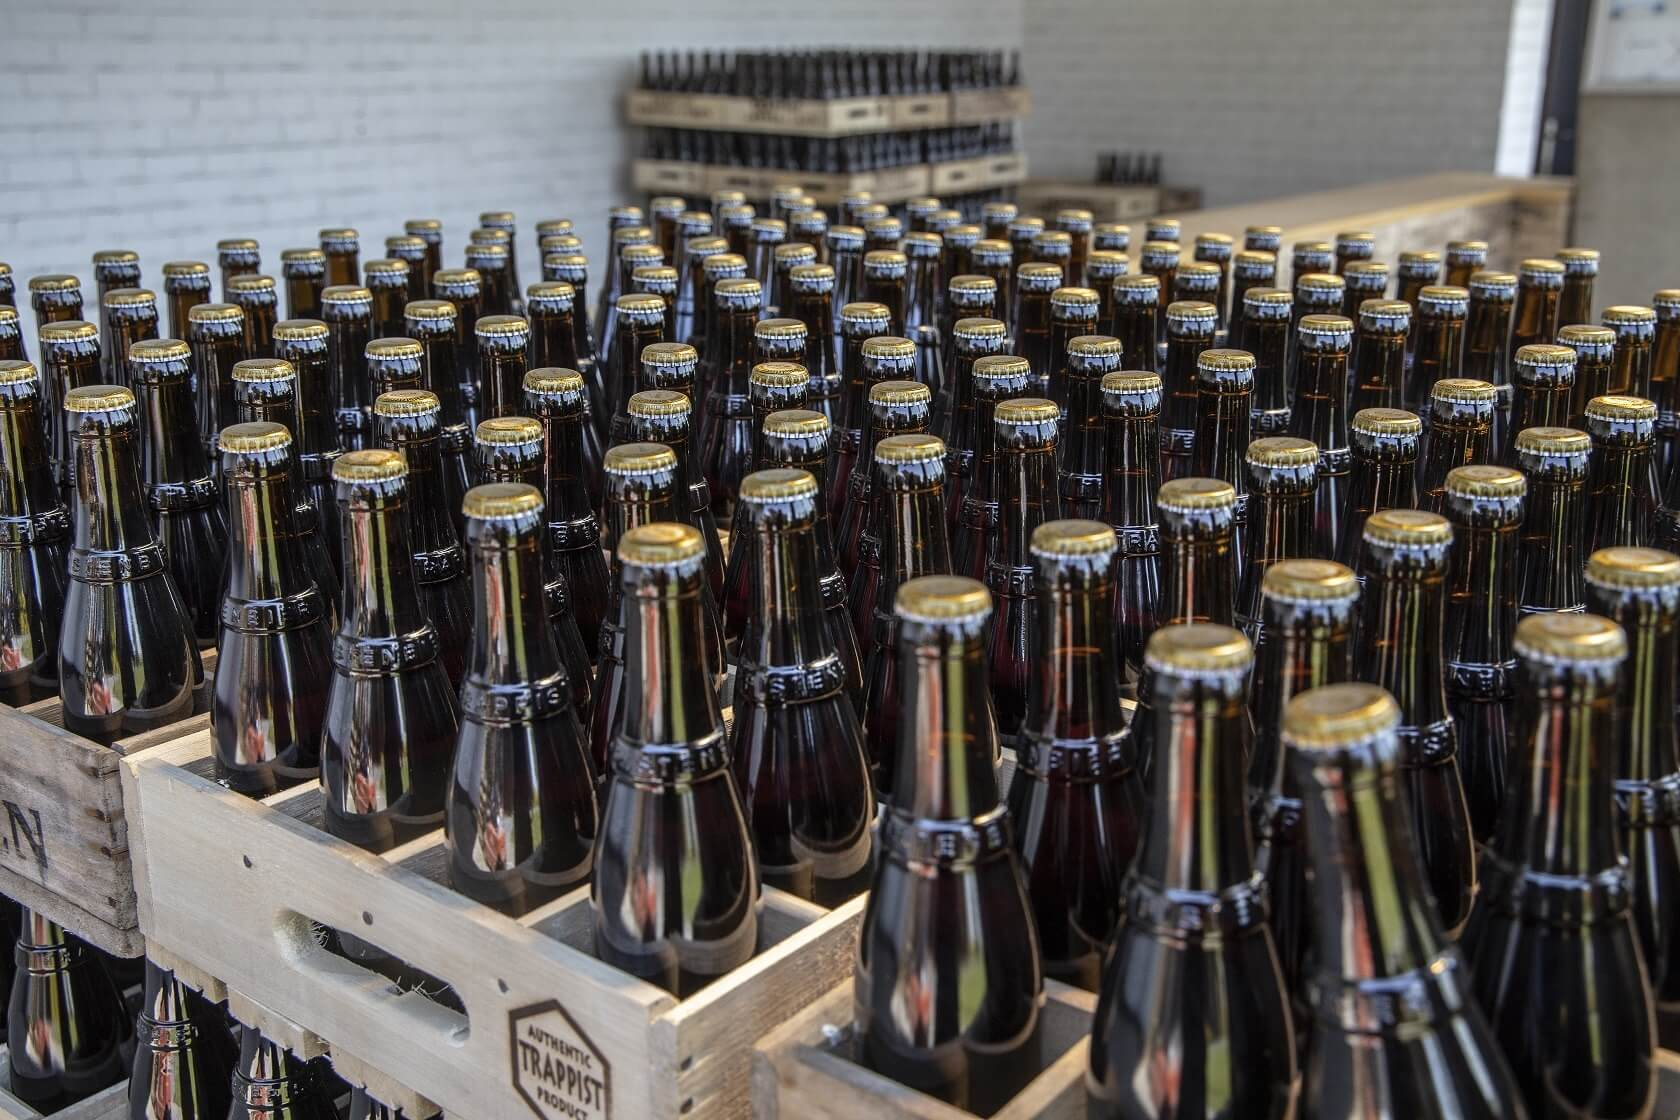 How to drink Westvleteren 12?